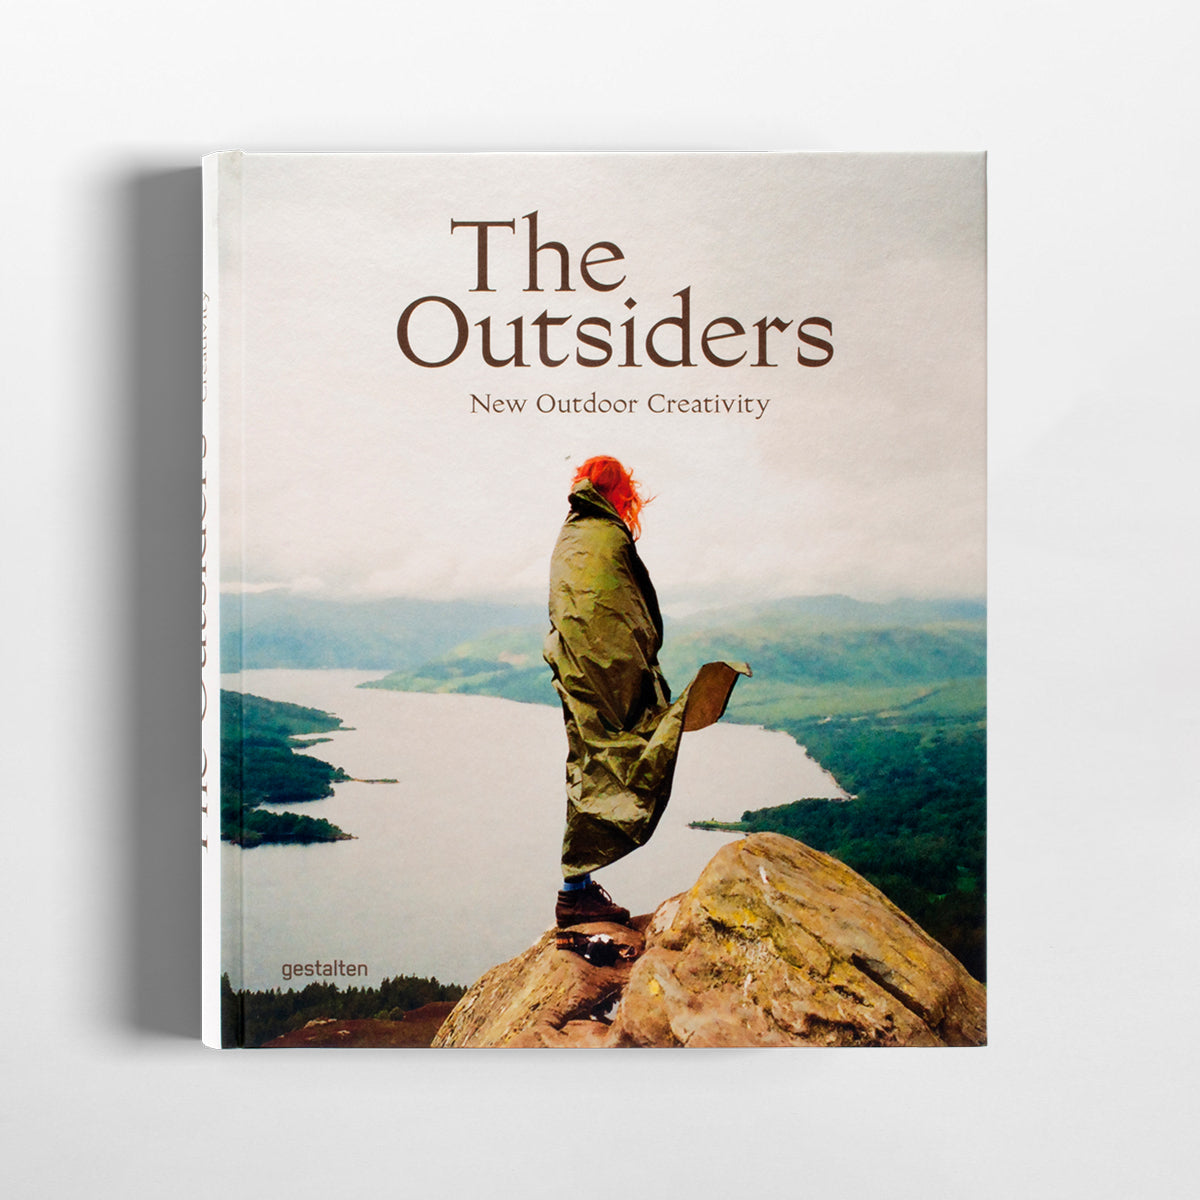 The outsiders new outdoor creativity